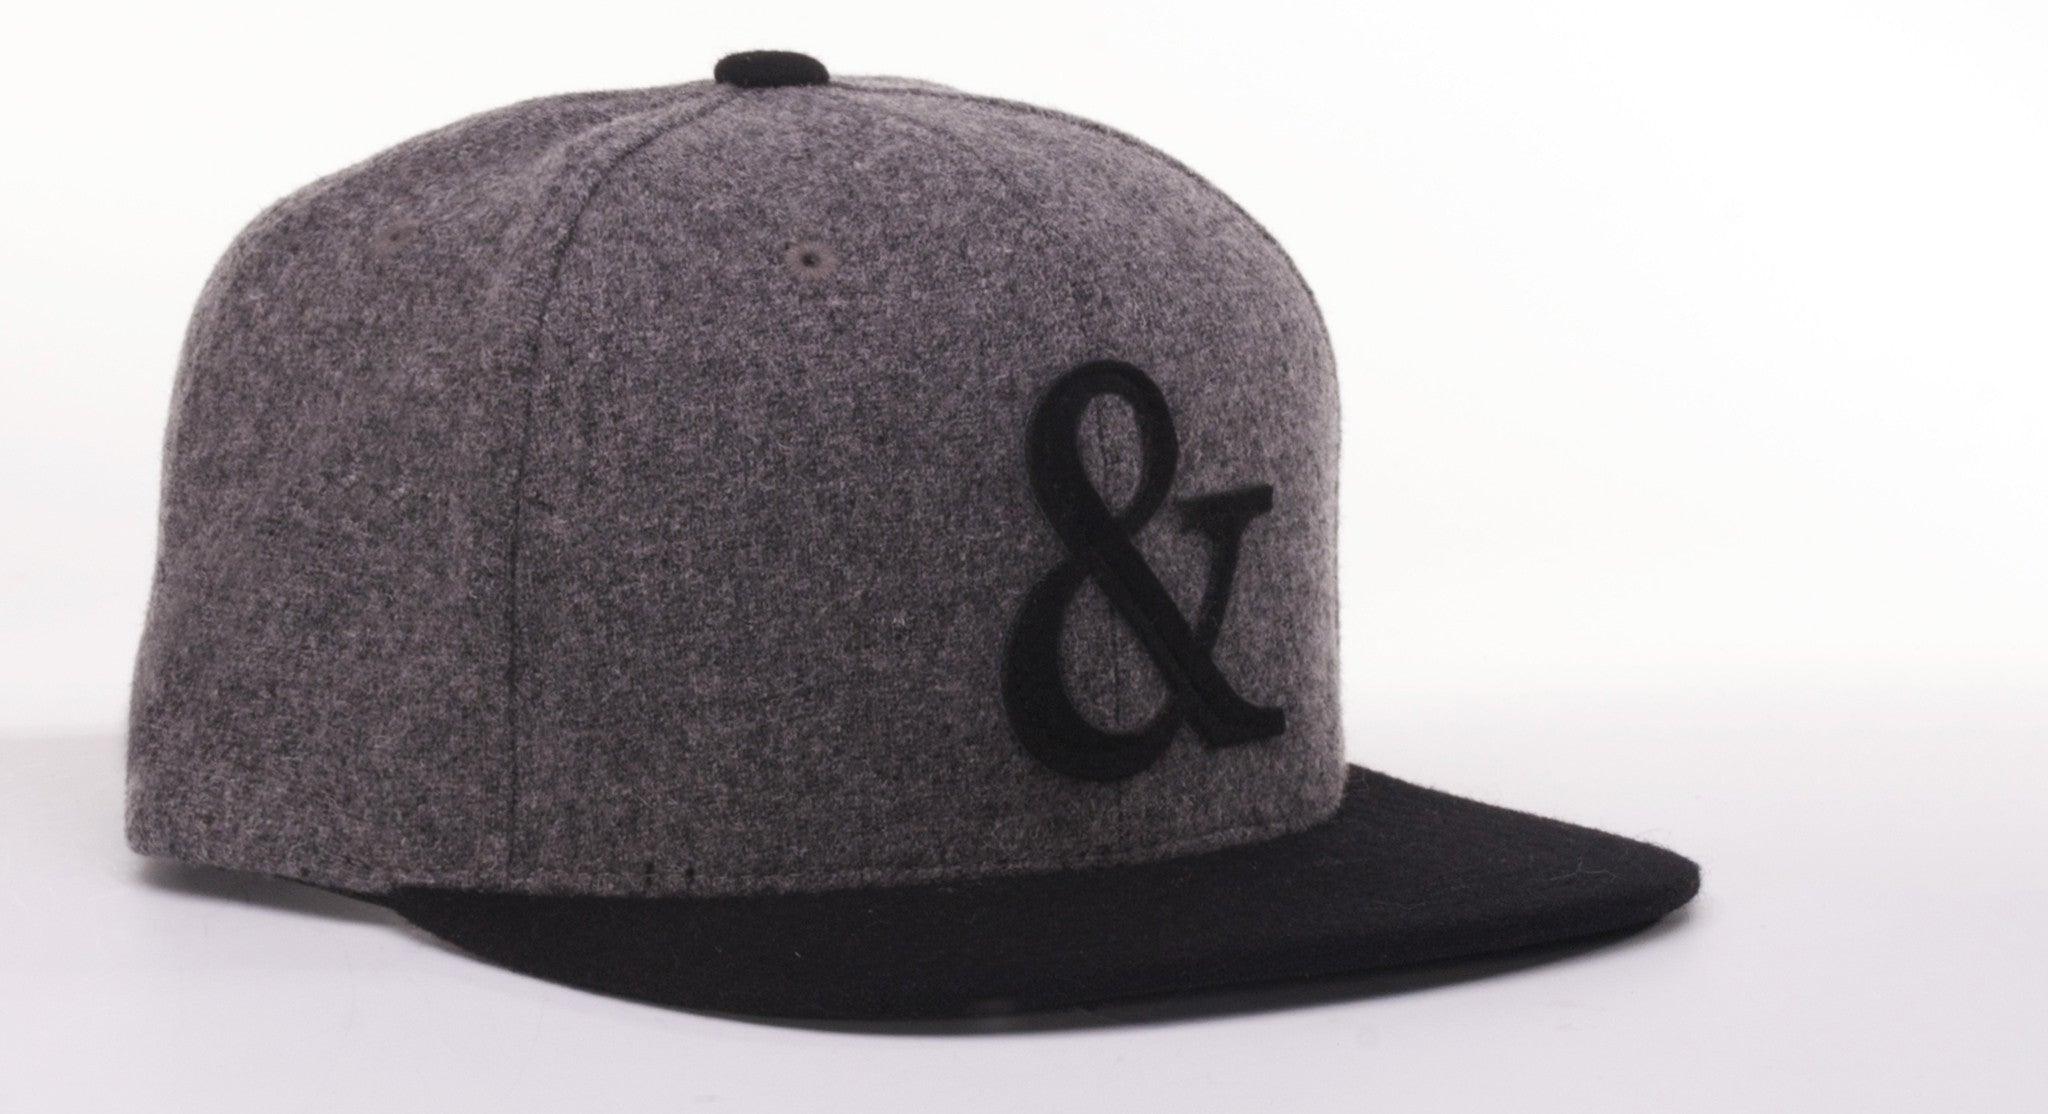 AMPERSAND MELTON WOOL // CHARCOAL & BLACK